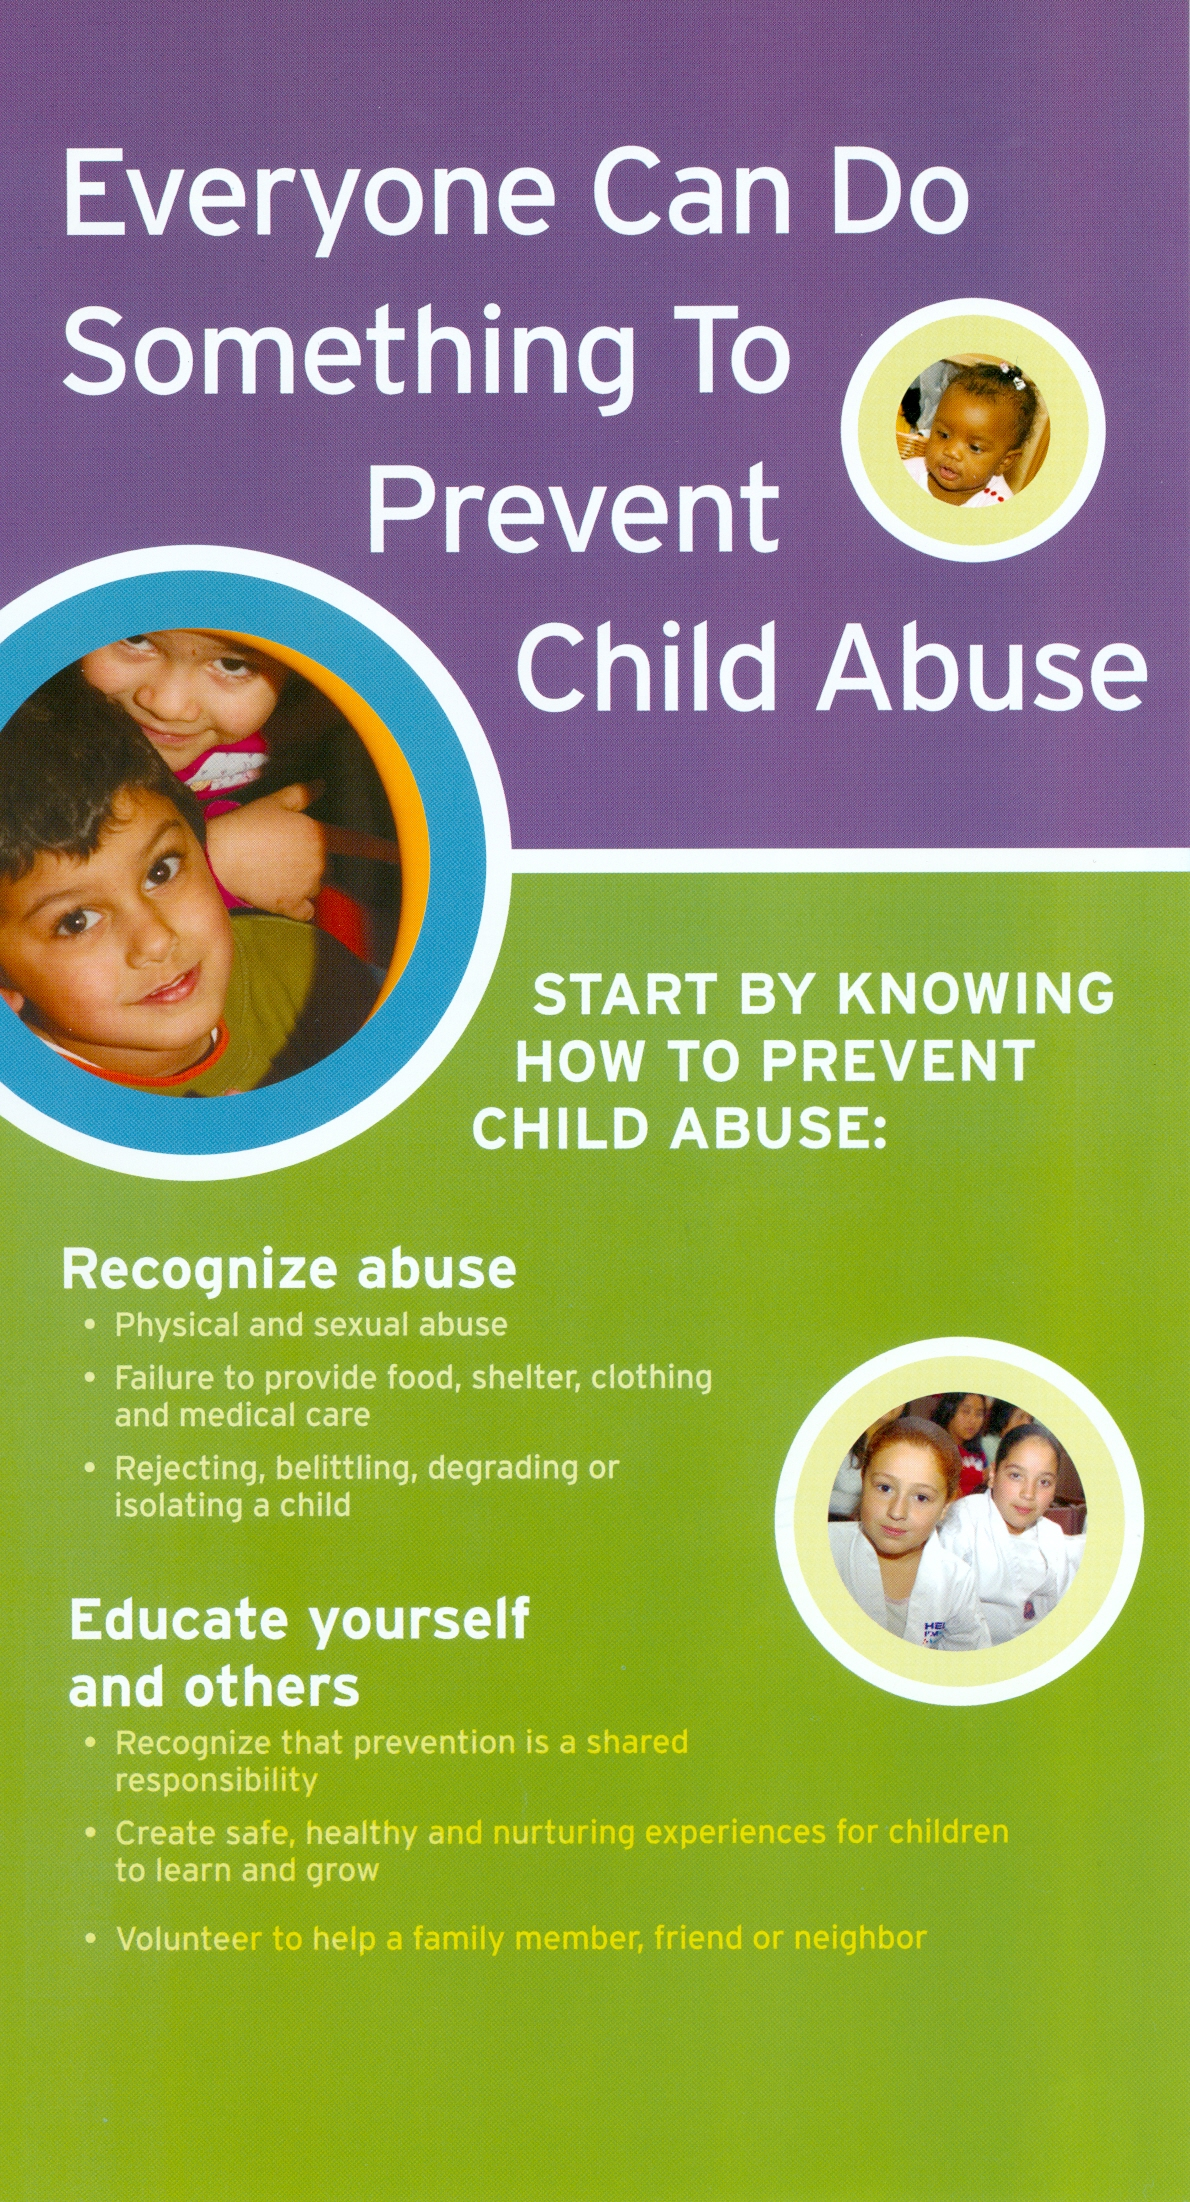 child abuse and prevention Capa promotes awareness and provides tools to help make this possible capa is committed to preventing and treating all forms of child abuse and neglect by creating changes in individuals, families and society that strengthen relationships and promote healing.